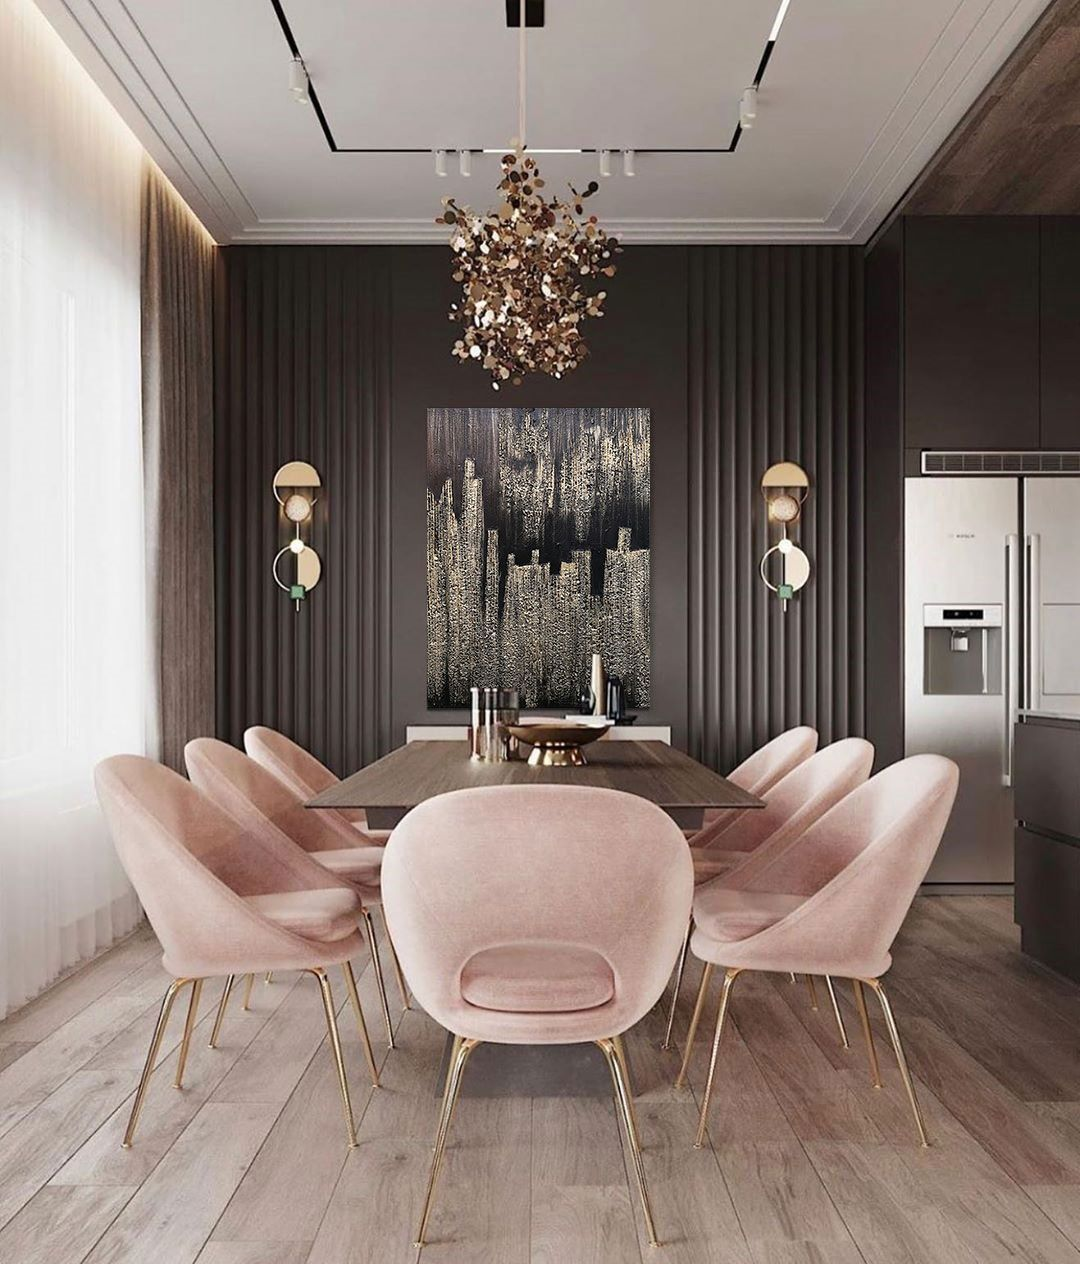 Gorgeous Luxurious Dining Room Design For Luxury Home Ideas - Feel inspired with Covet Group | www.covetgroup.com | Visit us for: #interior #decor #moderndecor - #design #dining #gorgeous #home #HouseDesign #ideas #luxurious #luxury #ModernHomeDesign #ModernInteriorDesign #Room